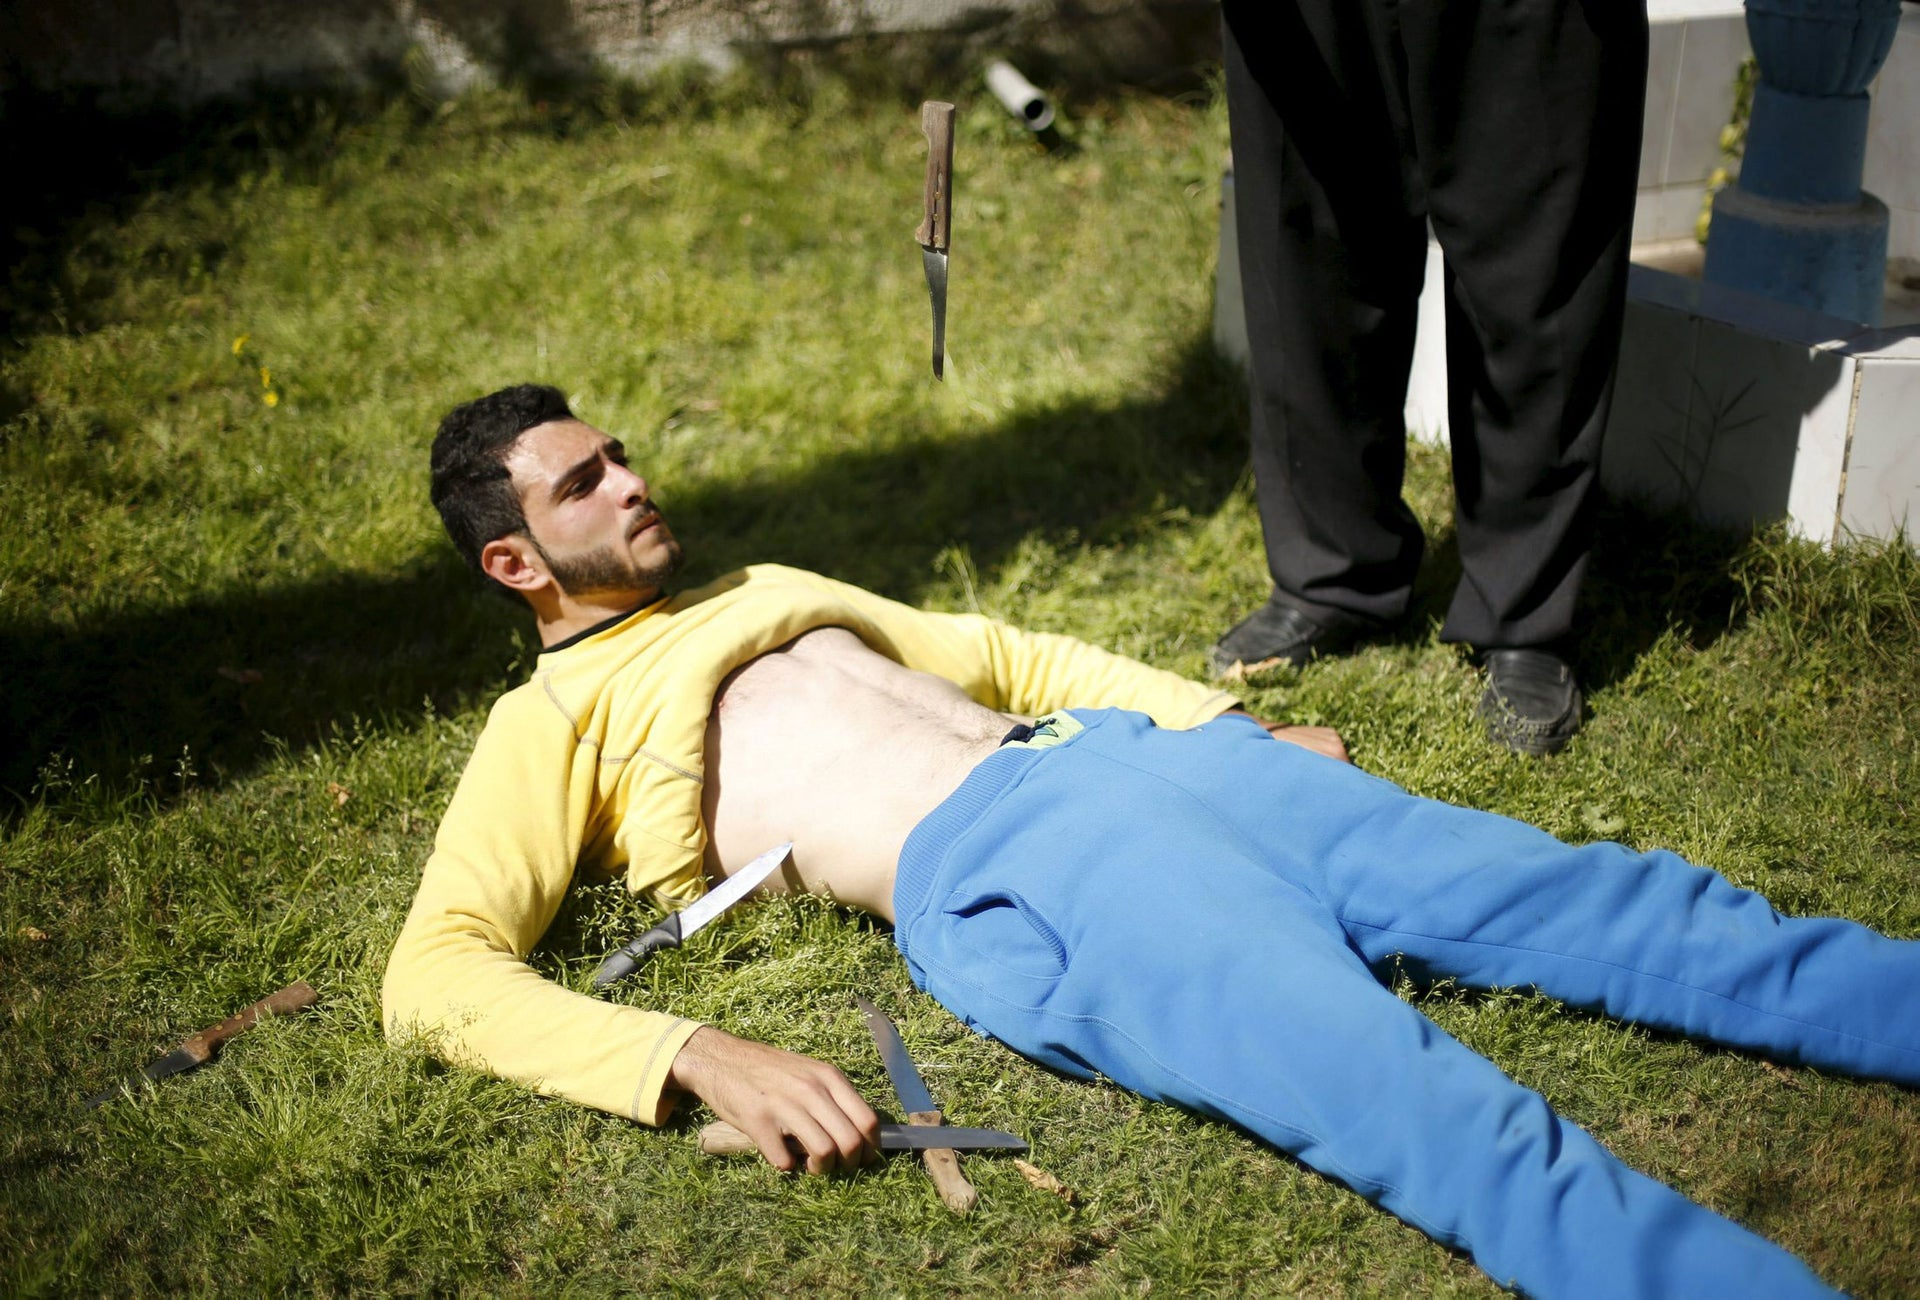 Palestinian Mohammad Baraka, 20, nicknamed by people as Gaza Samson, has knives dropped on his stomach as he exercises in Deir al-Balah in the central Gaza Strip March 5, 2016.